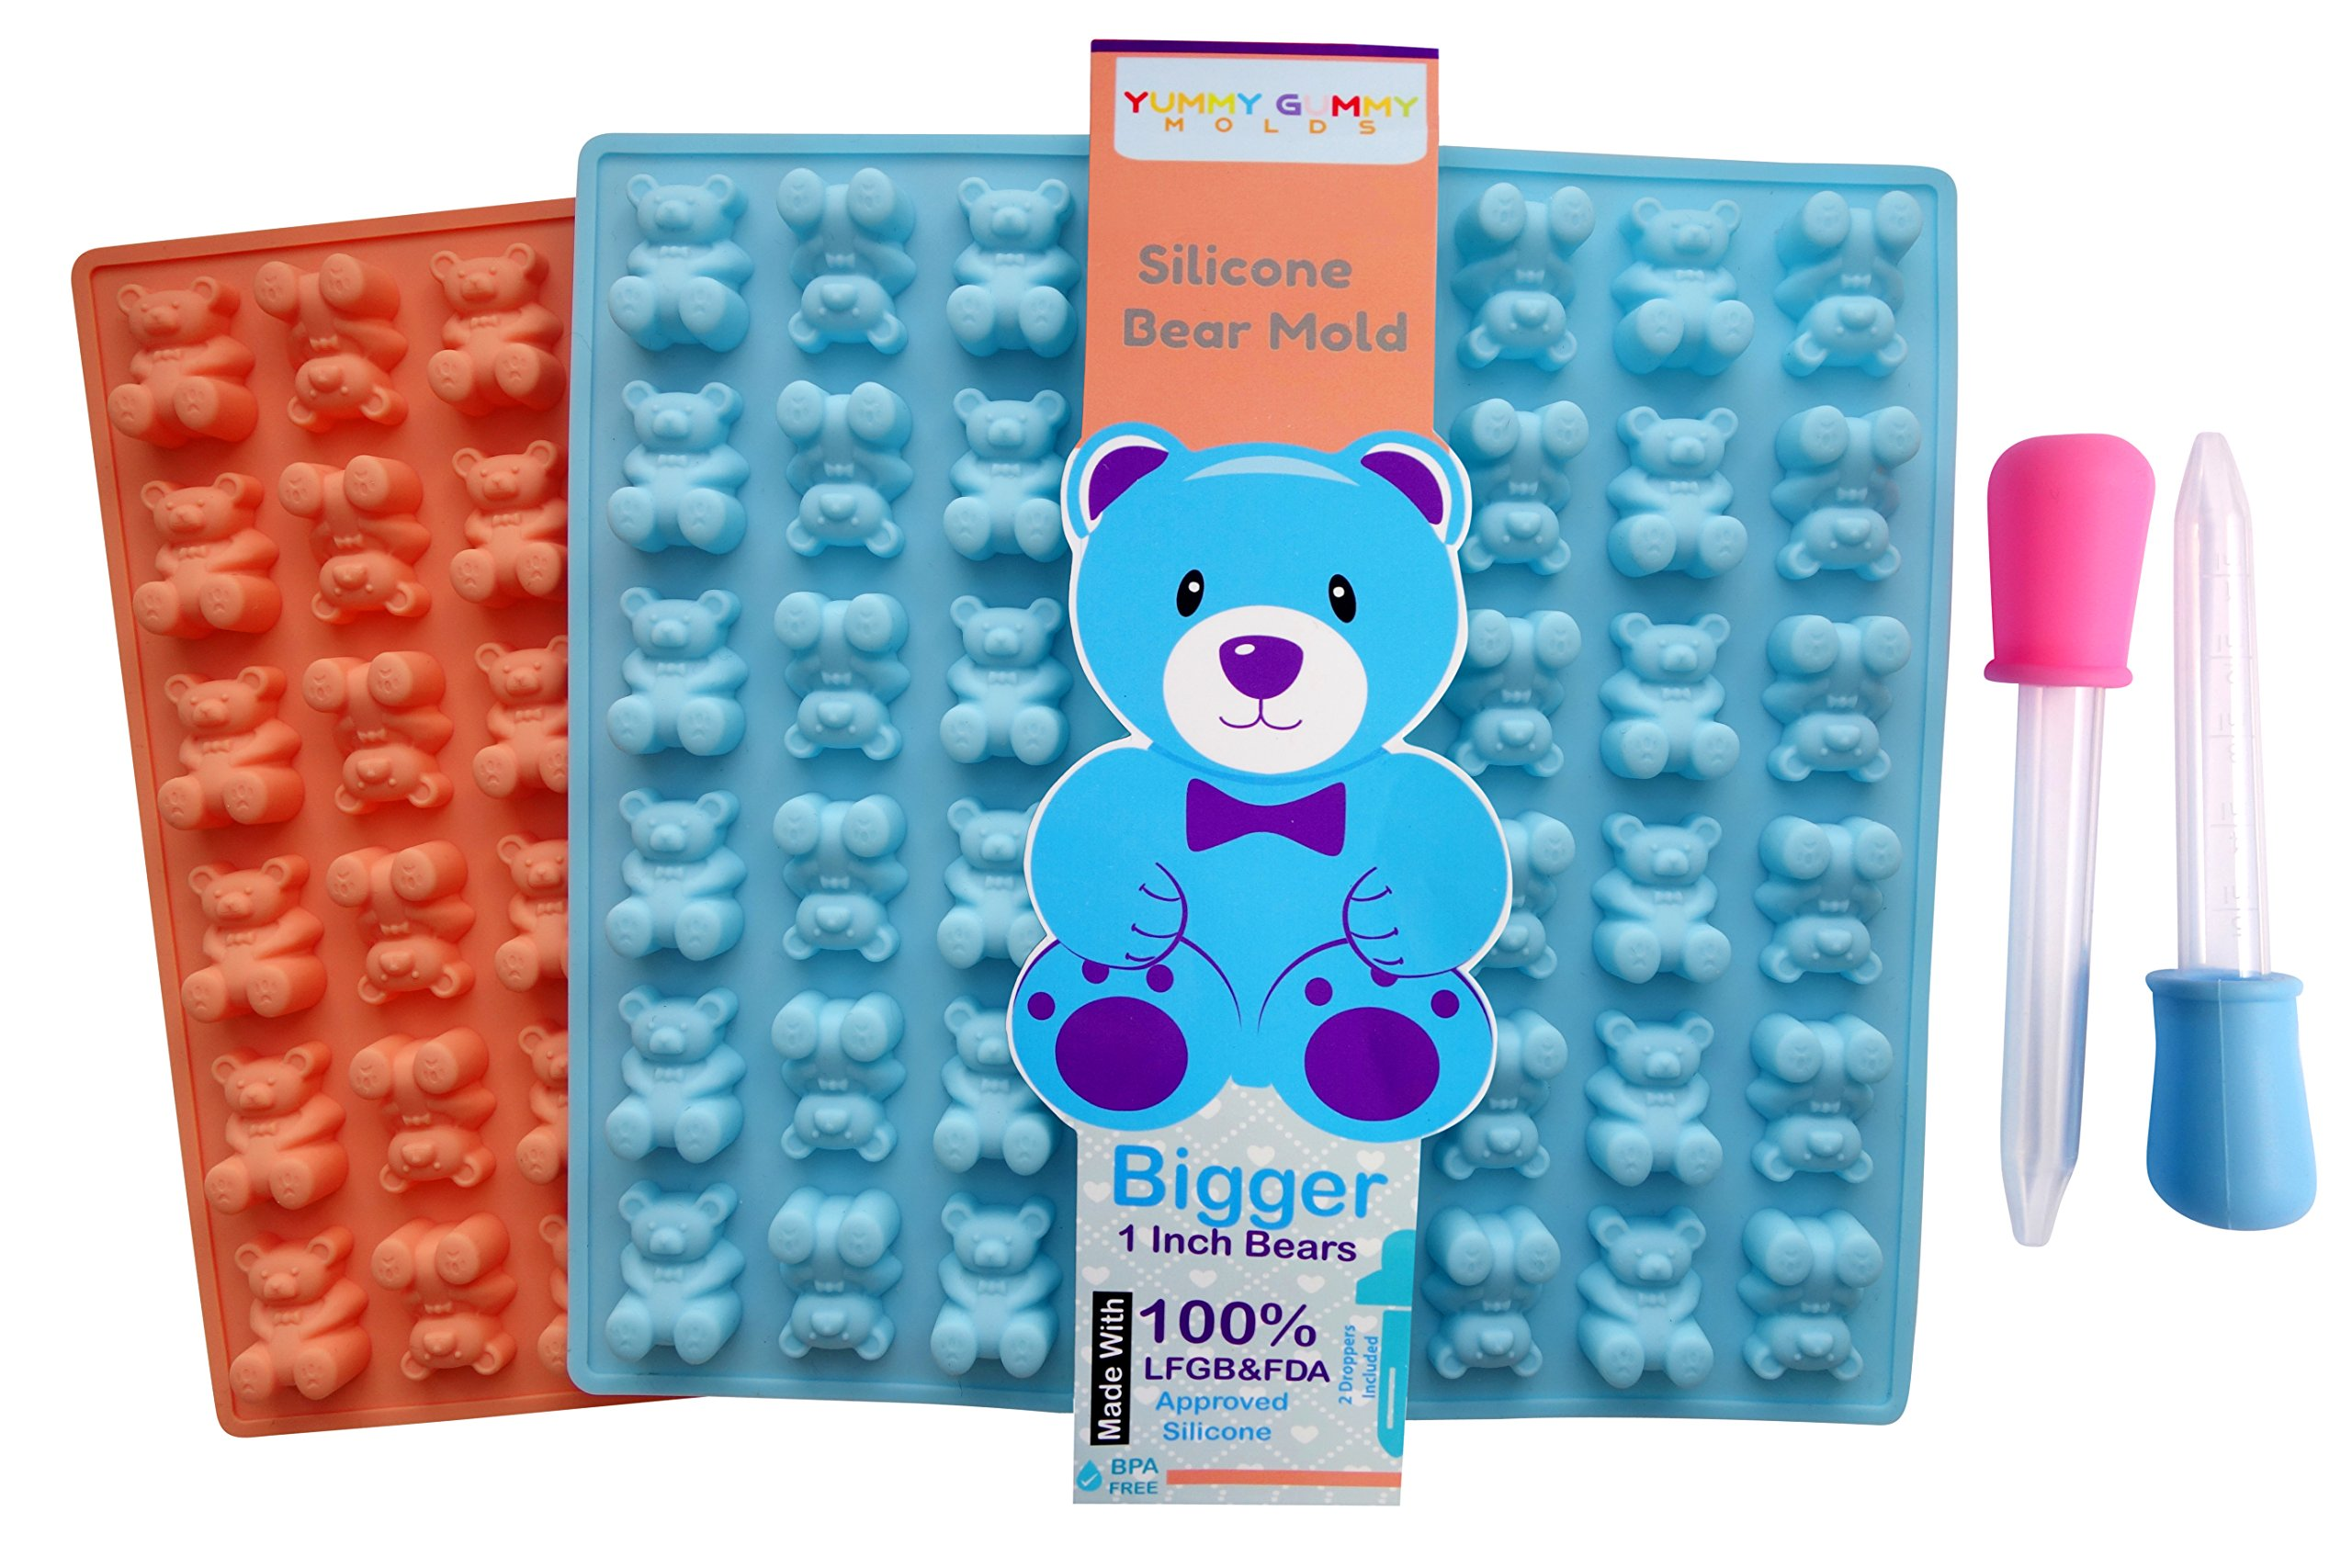 LARGER Bears Silicone Gummy Molds 2 Pack - BPA Free, LFGB/FDA Approved, Unique Design, Perfect for Homemade Gelatin Gummies, Candies, Chocolate, Ice Cubes, Recipe and 2 Bonus Droppers Included